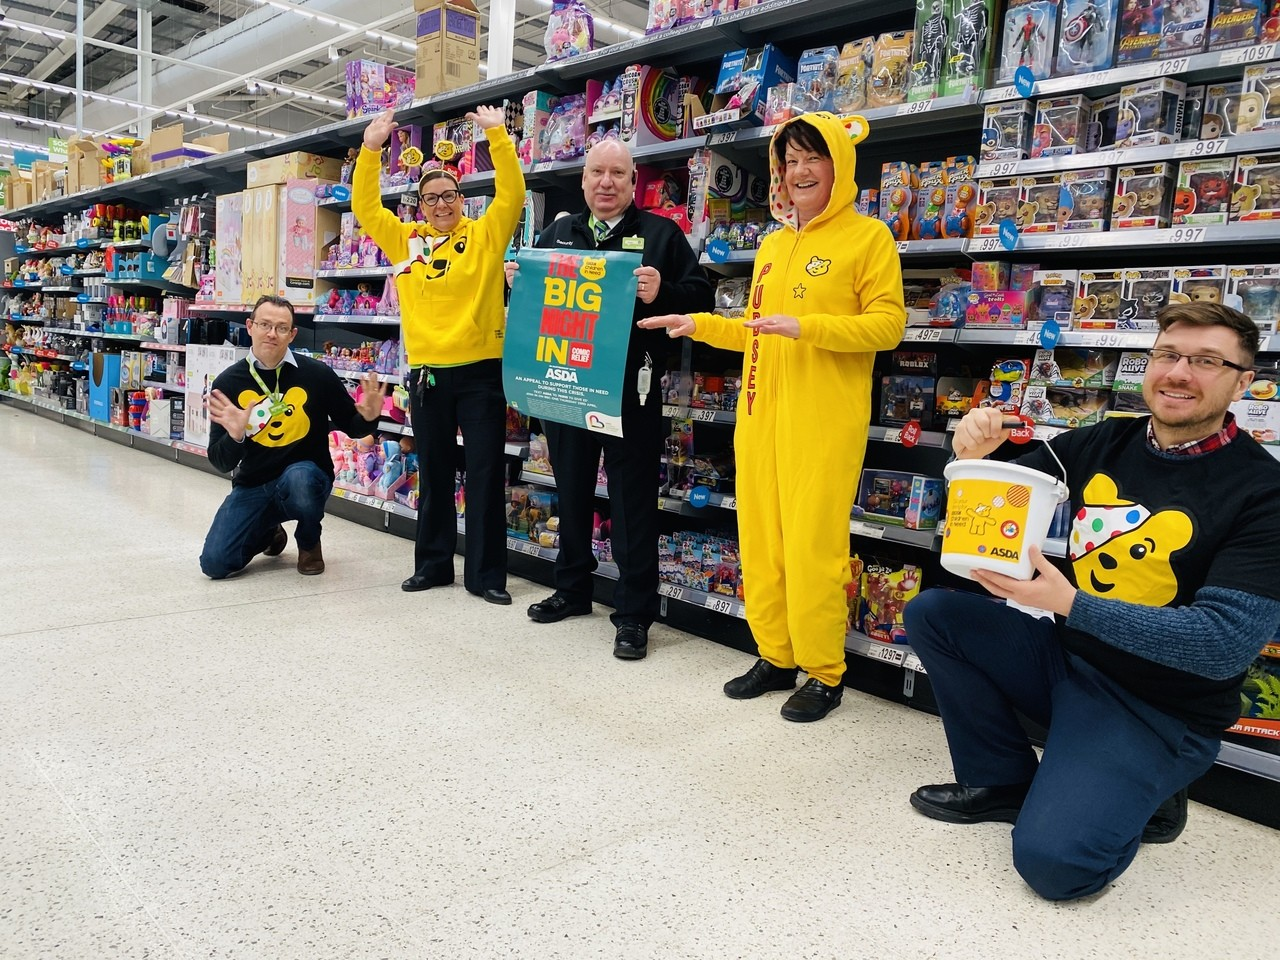 The BIG night in | Asda Rugby